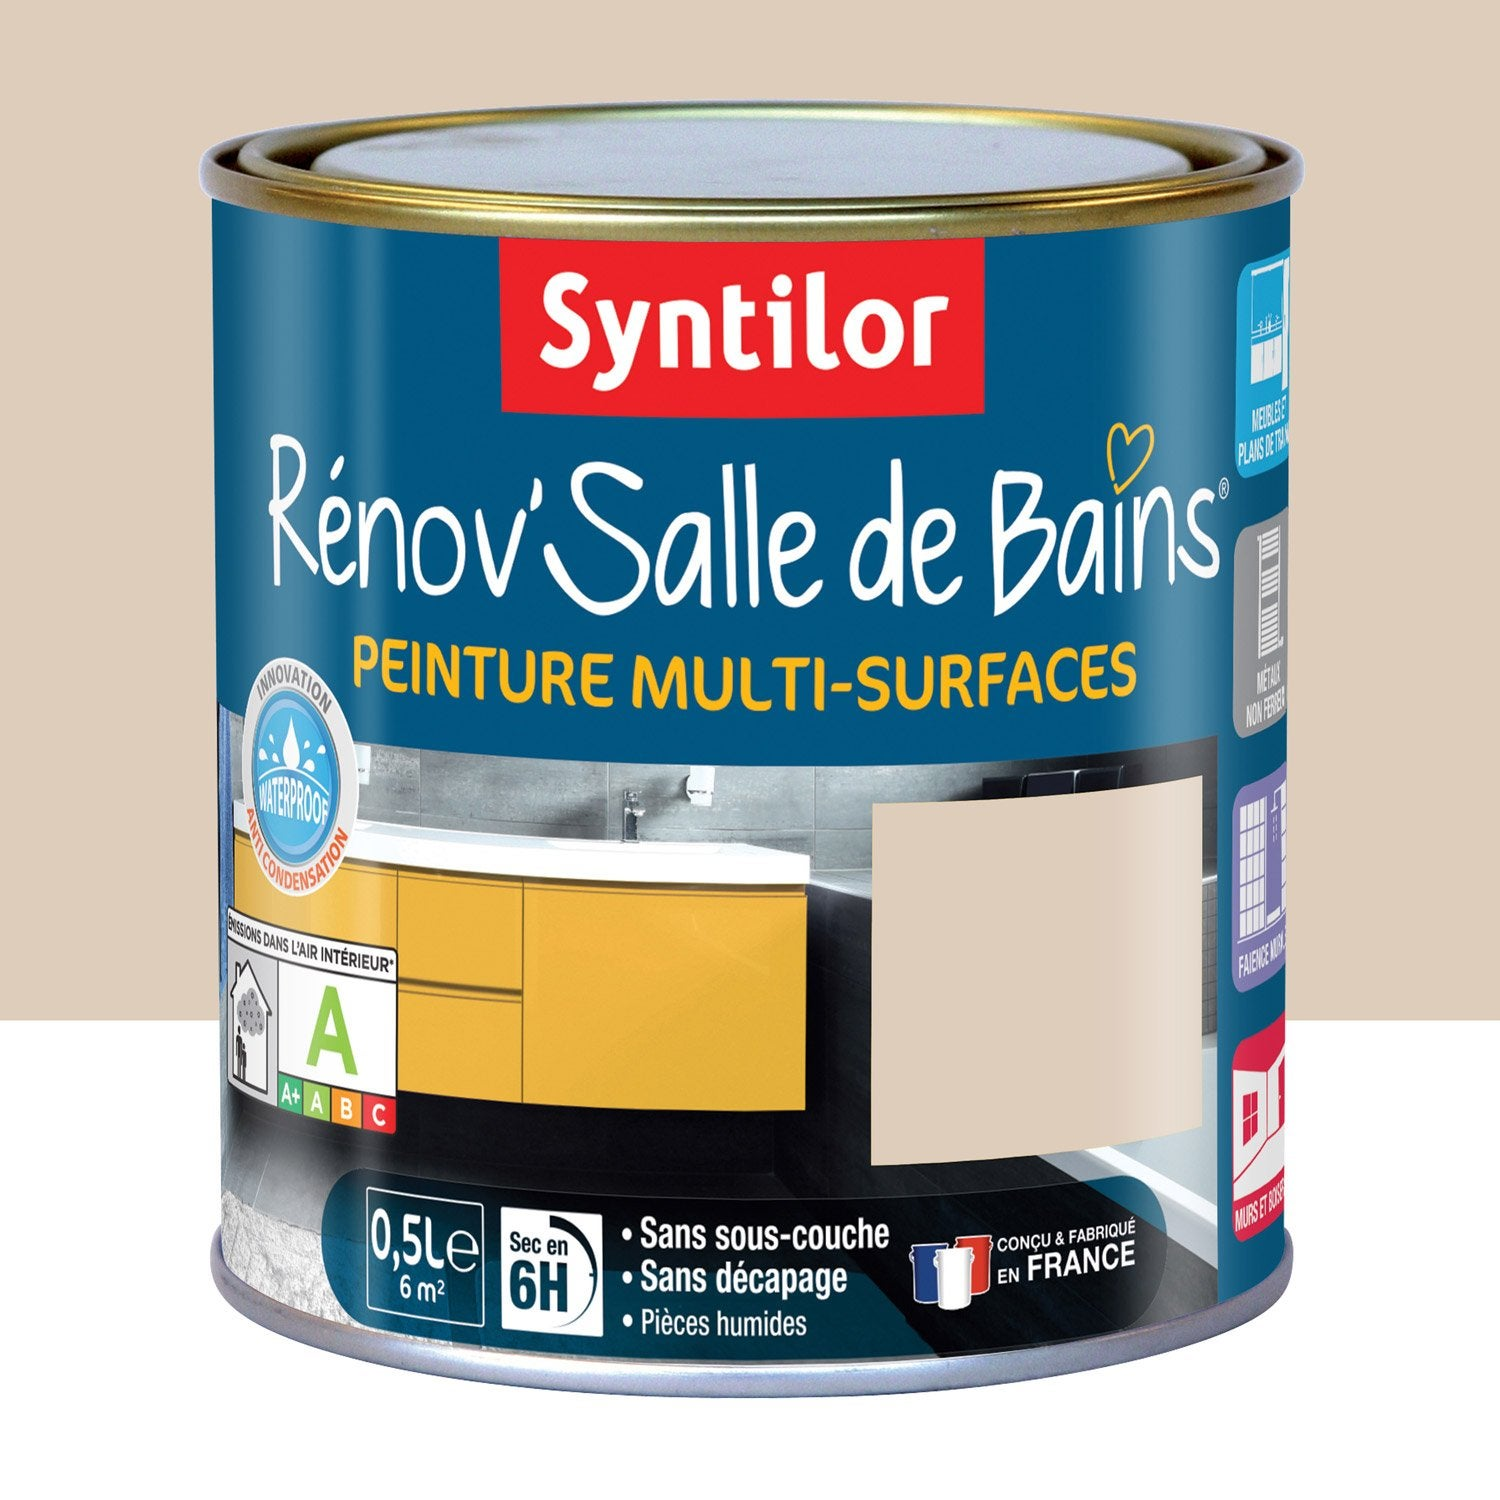 peinture r nov 39 salle de bains syntilor beige poudr 0 5 l leroy merlin. Black Bedroom Furniture Sets. Home Design Ideas